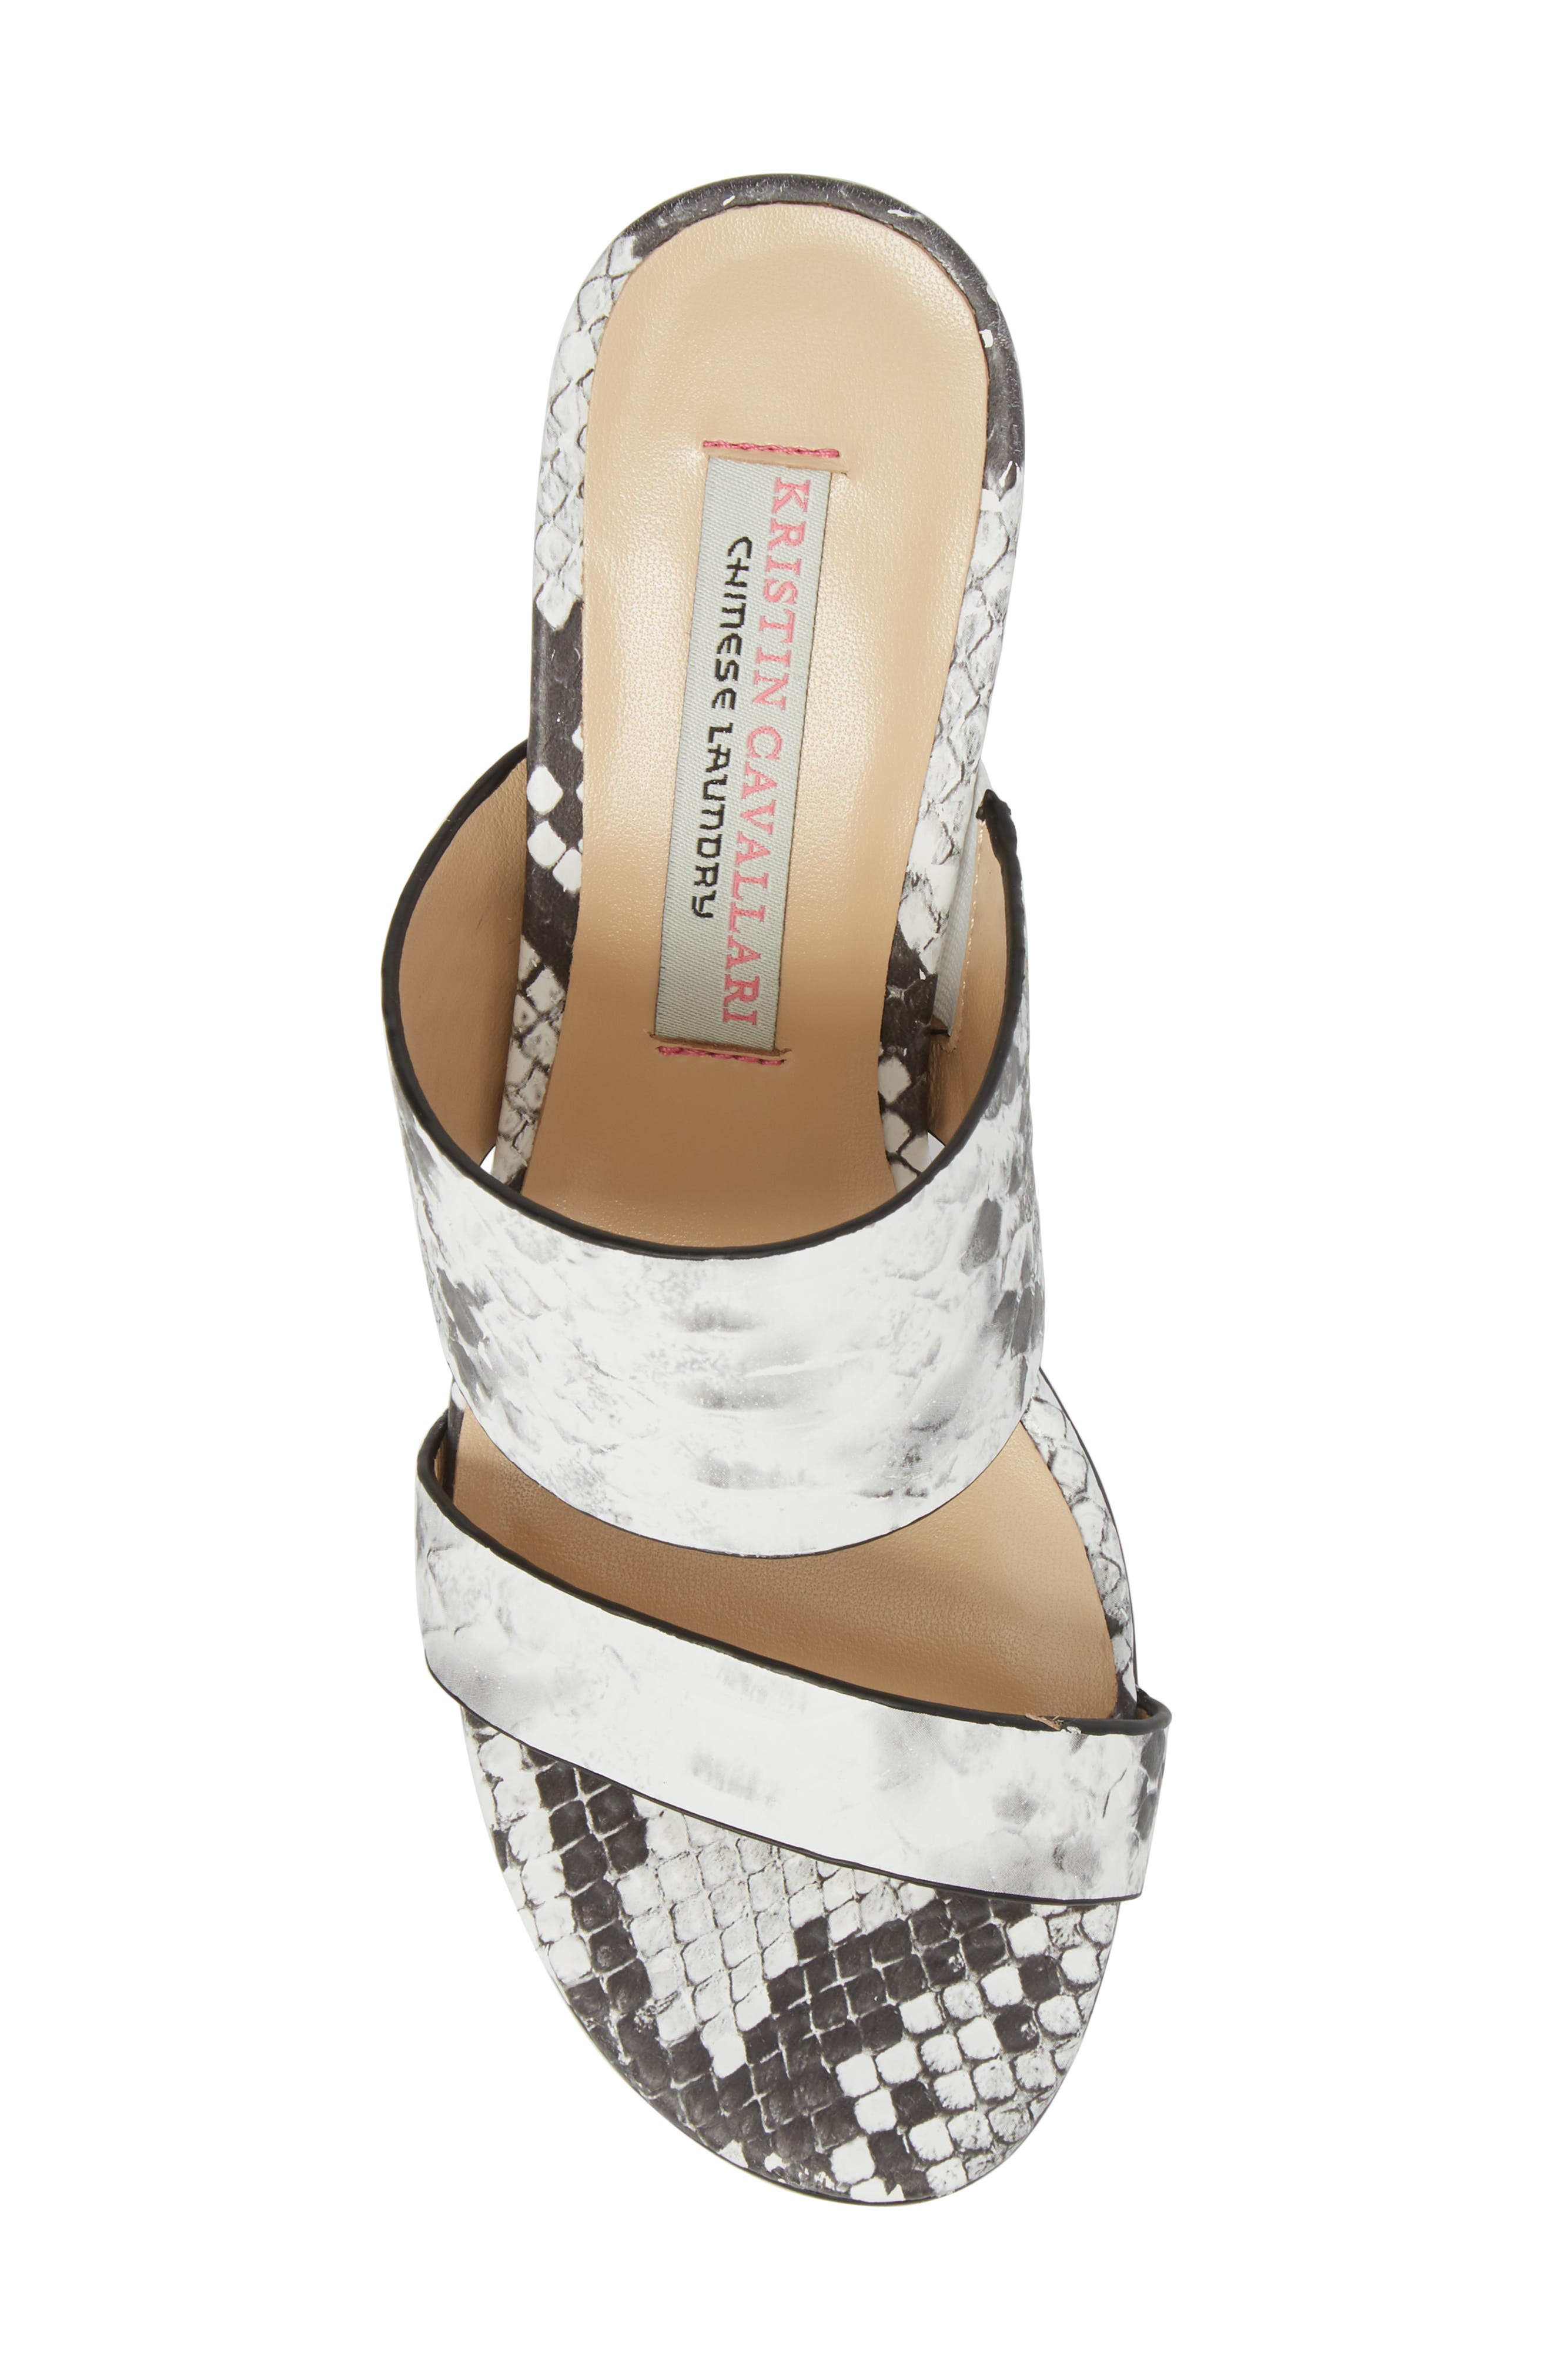 Lakeview Sandal,                             Alternate thumbnail 5, color,                             GREY/ WHITE PRINT LEATHER